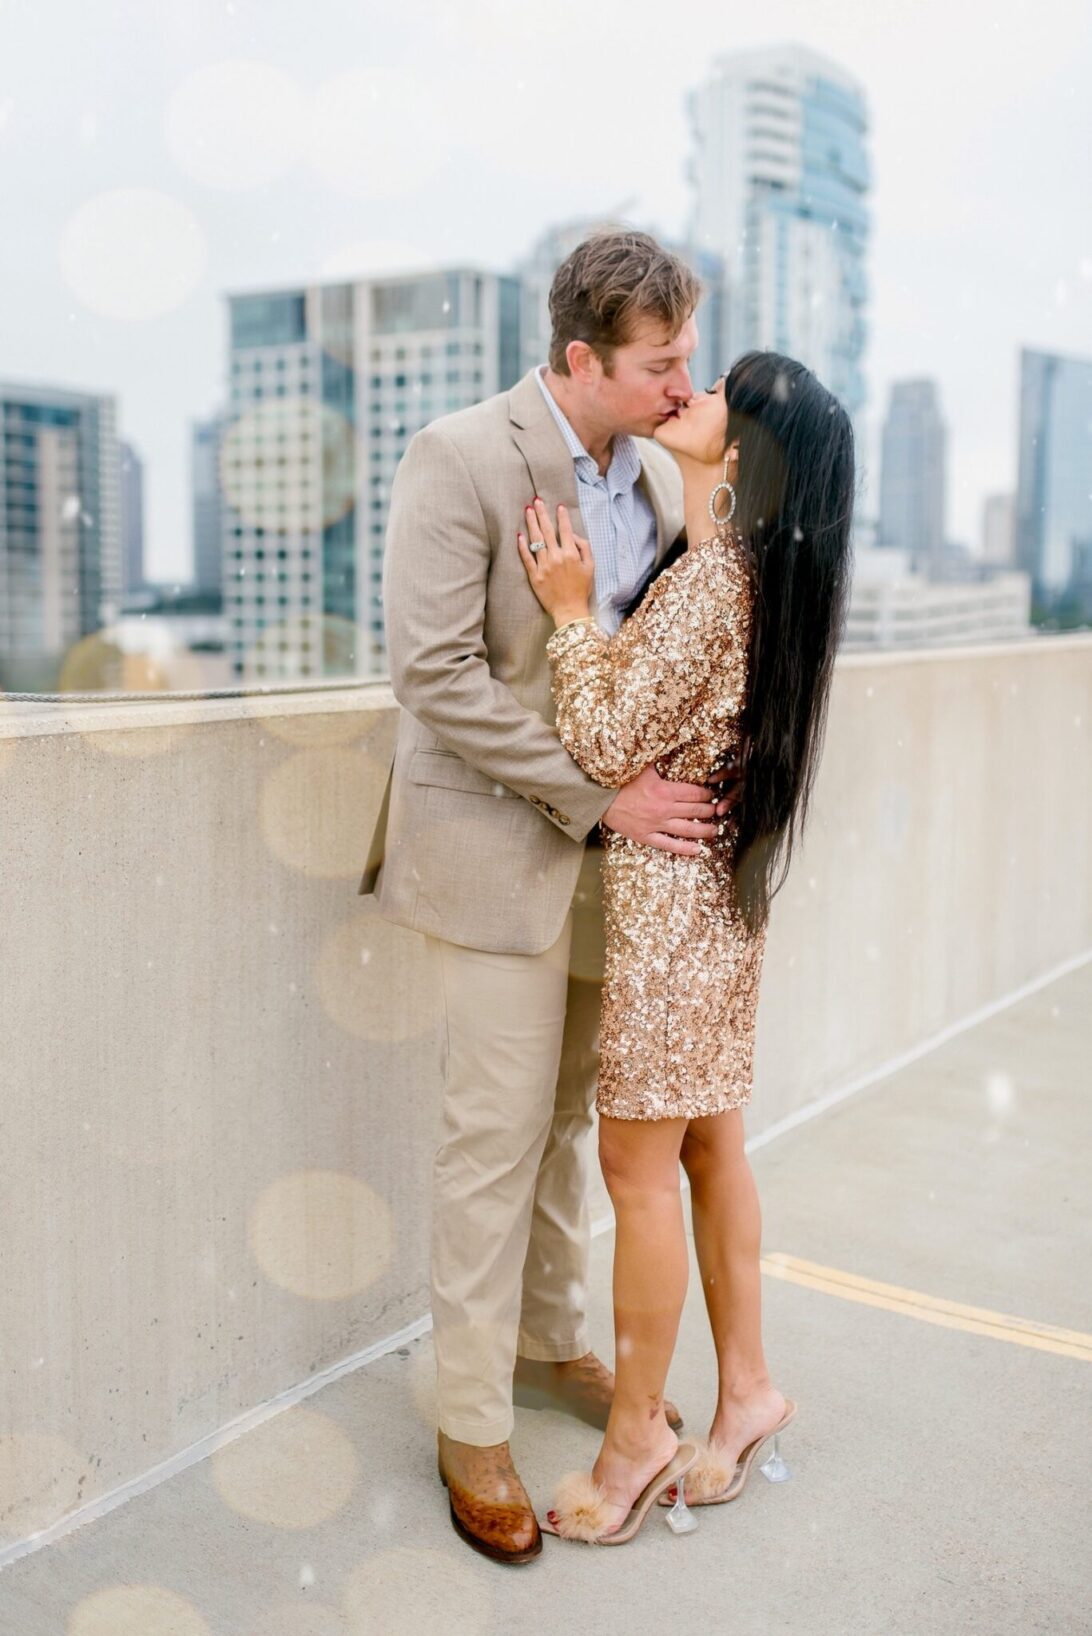 NEW YEAR 2021, NEW YEAR KISS, NEW YEAR COUPLE, GLITTERY DRESS, SEQUIN DRESS, SEQUIN GOLD DRESS